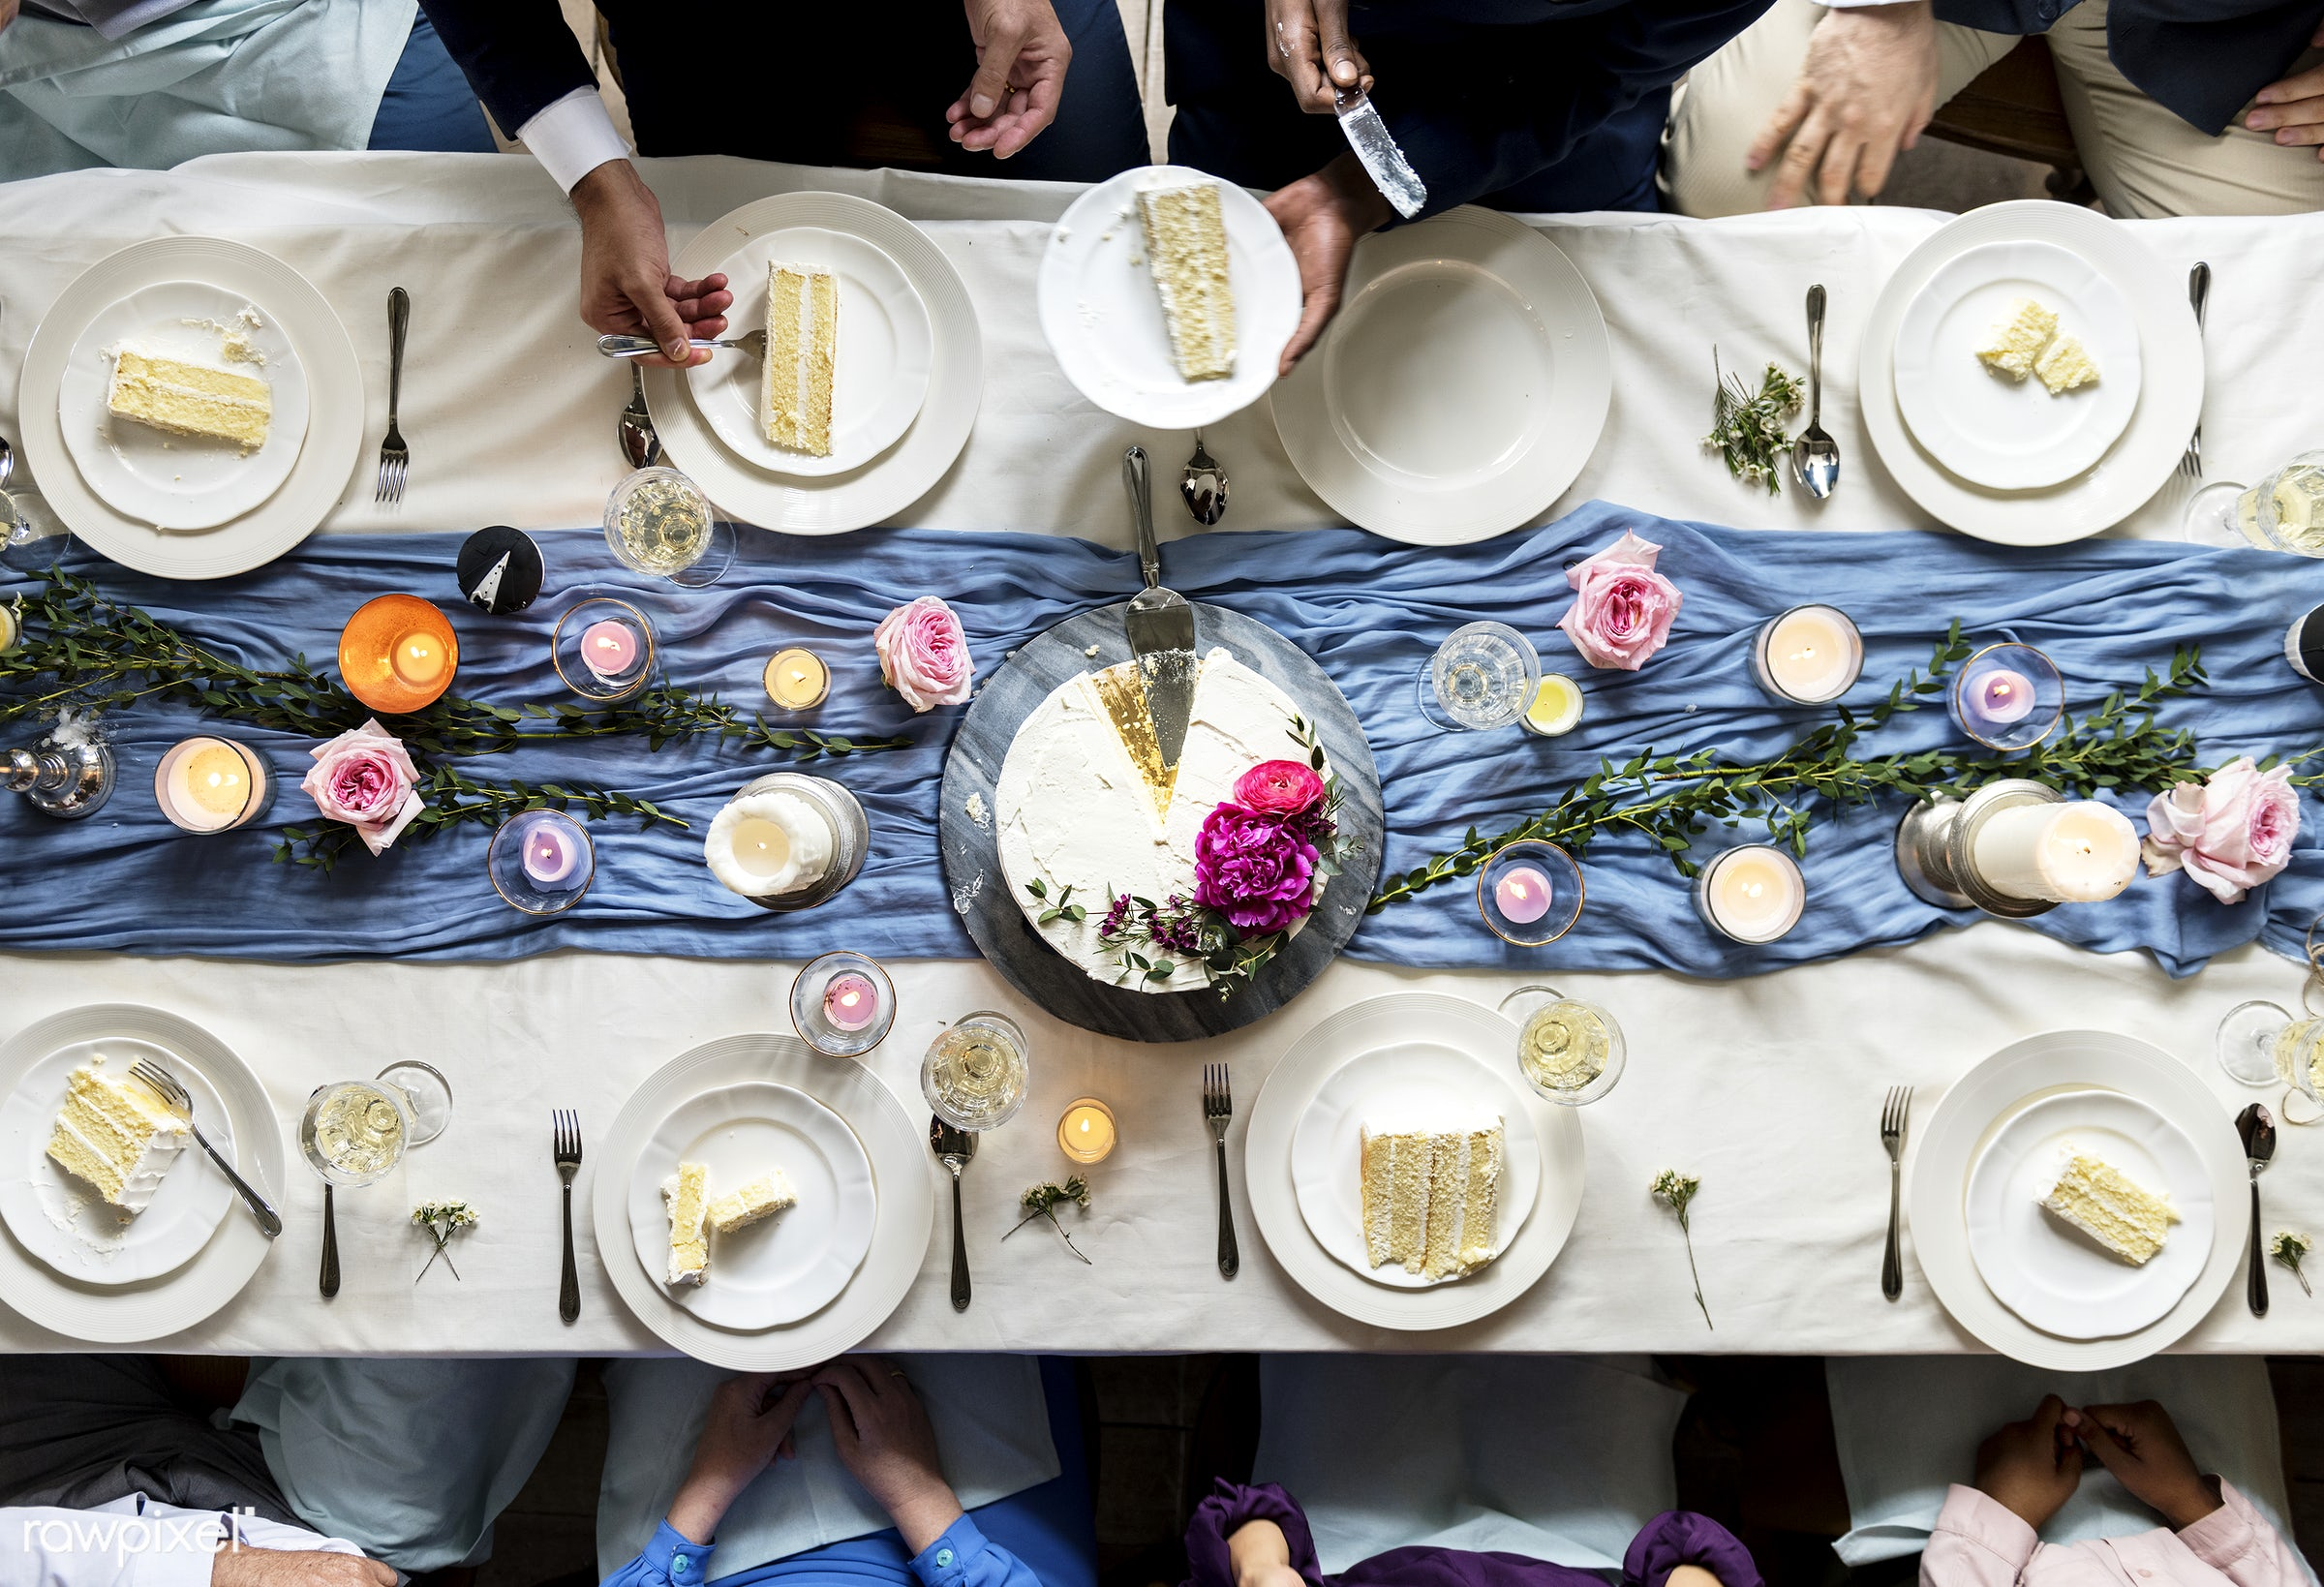 aerial view, cake, celebration, diversity, eat, event, flat lay, friends, gather, group, guests, hands, occasion, people,...